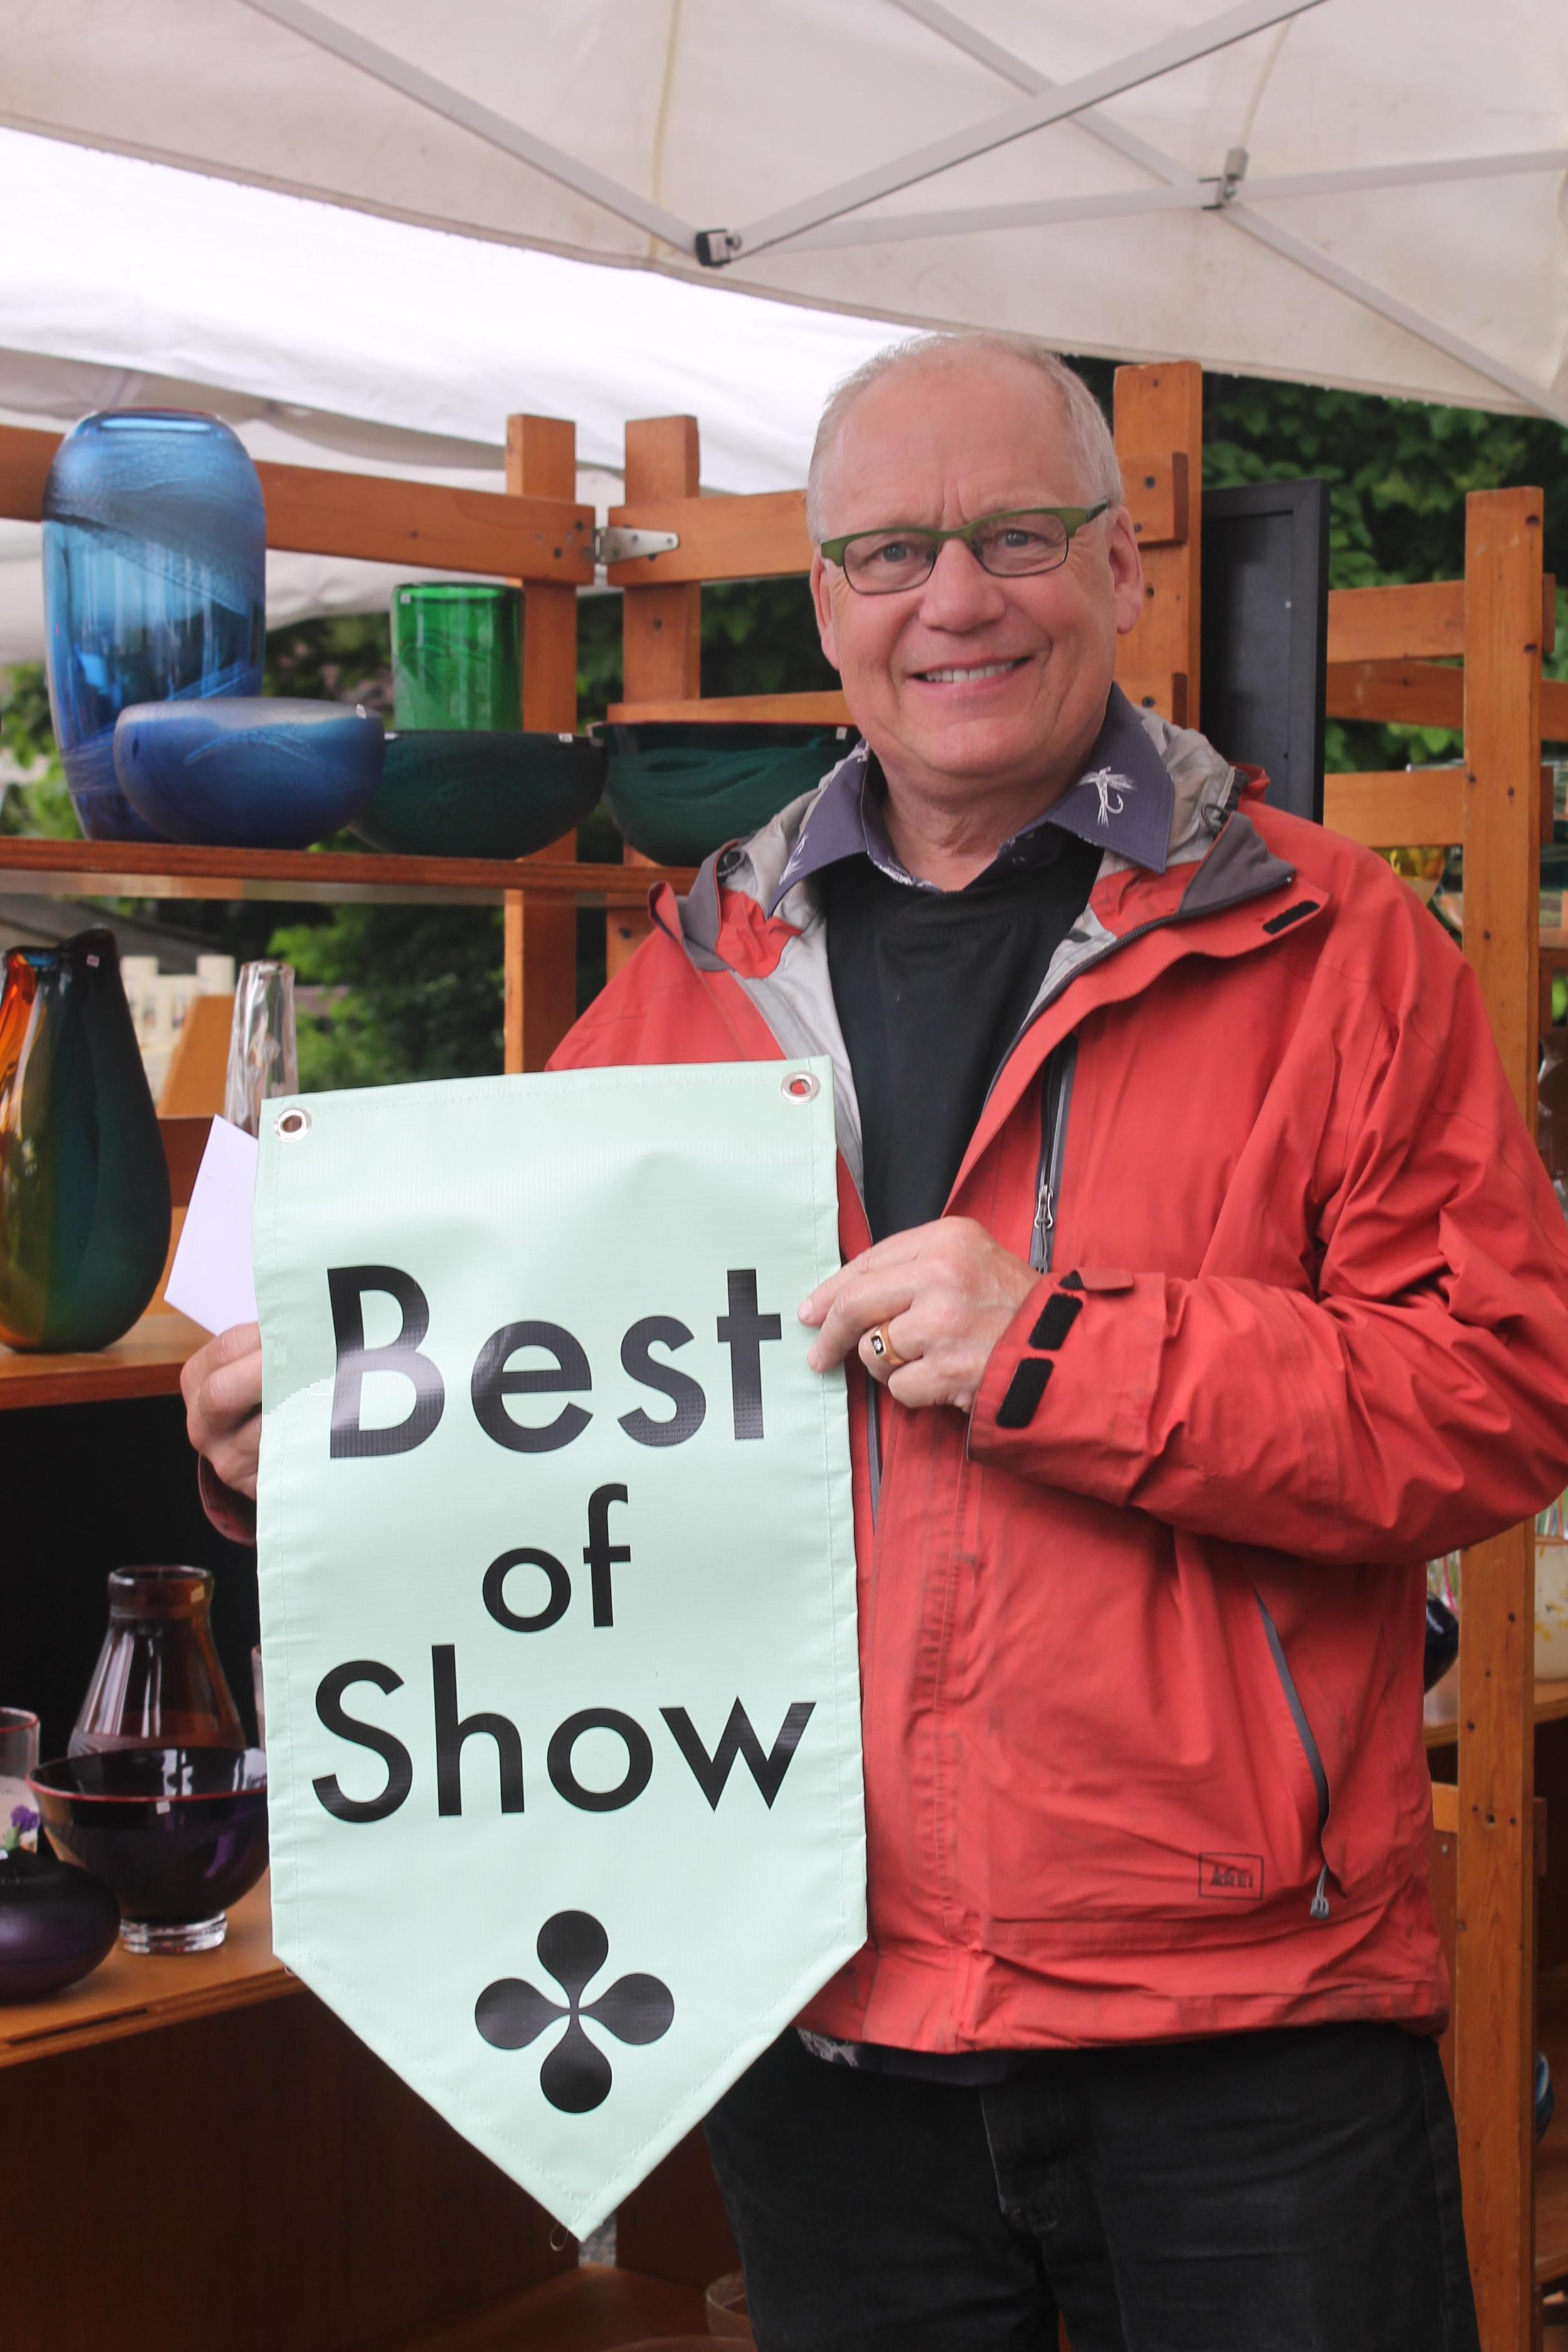 Best of Show: Steve Claypatch - Glass